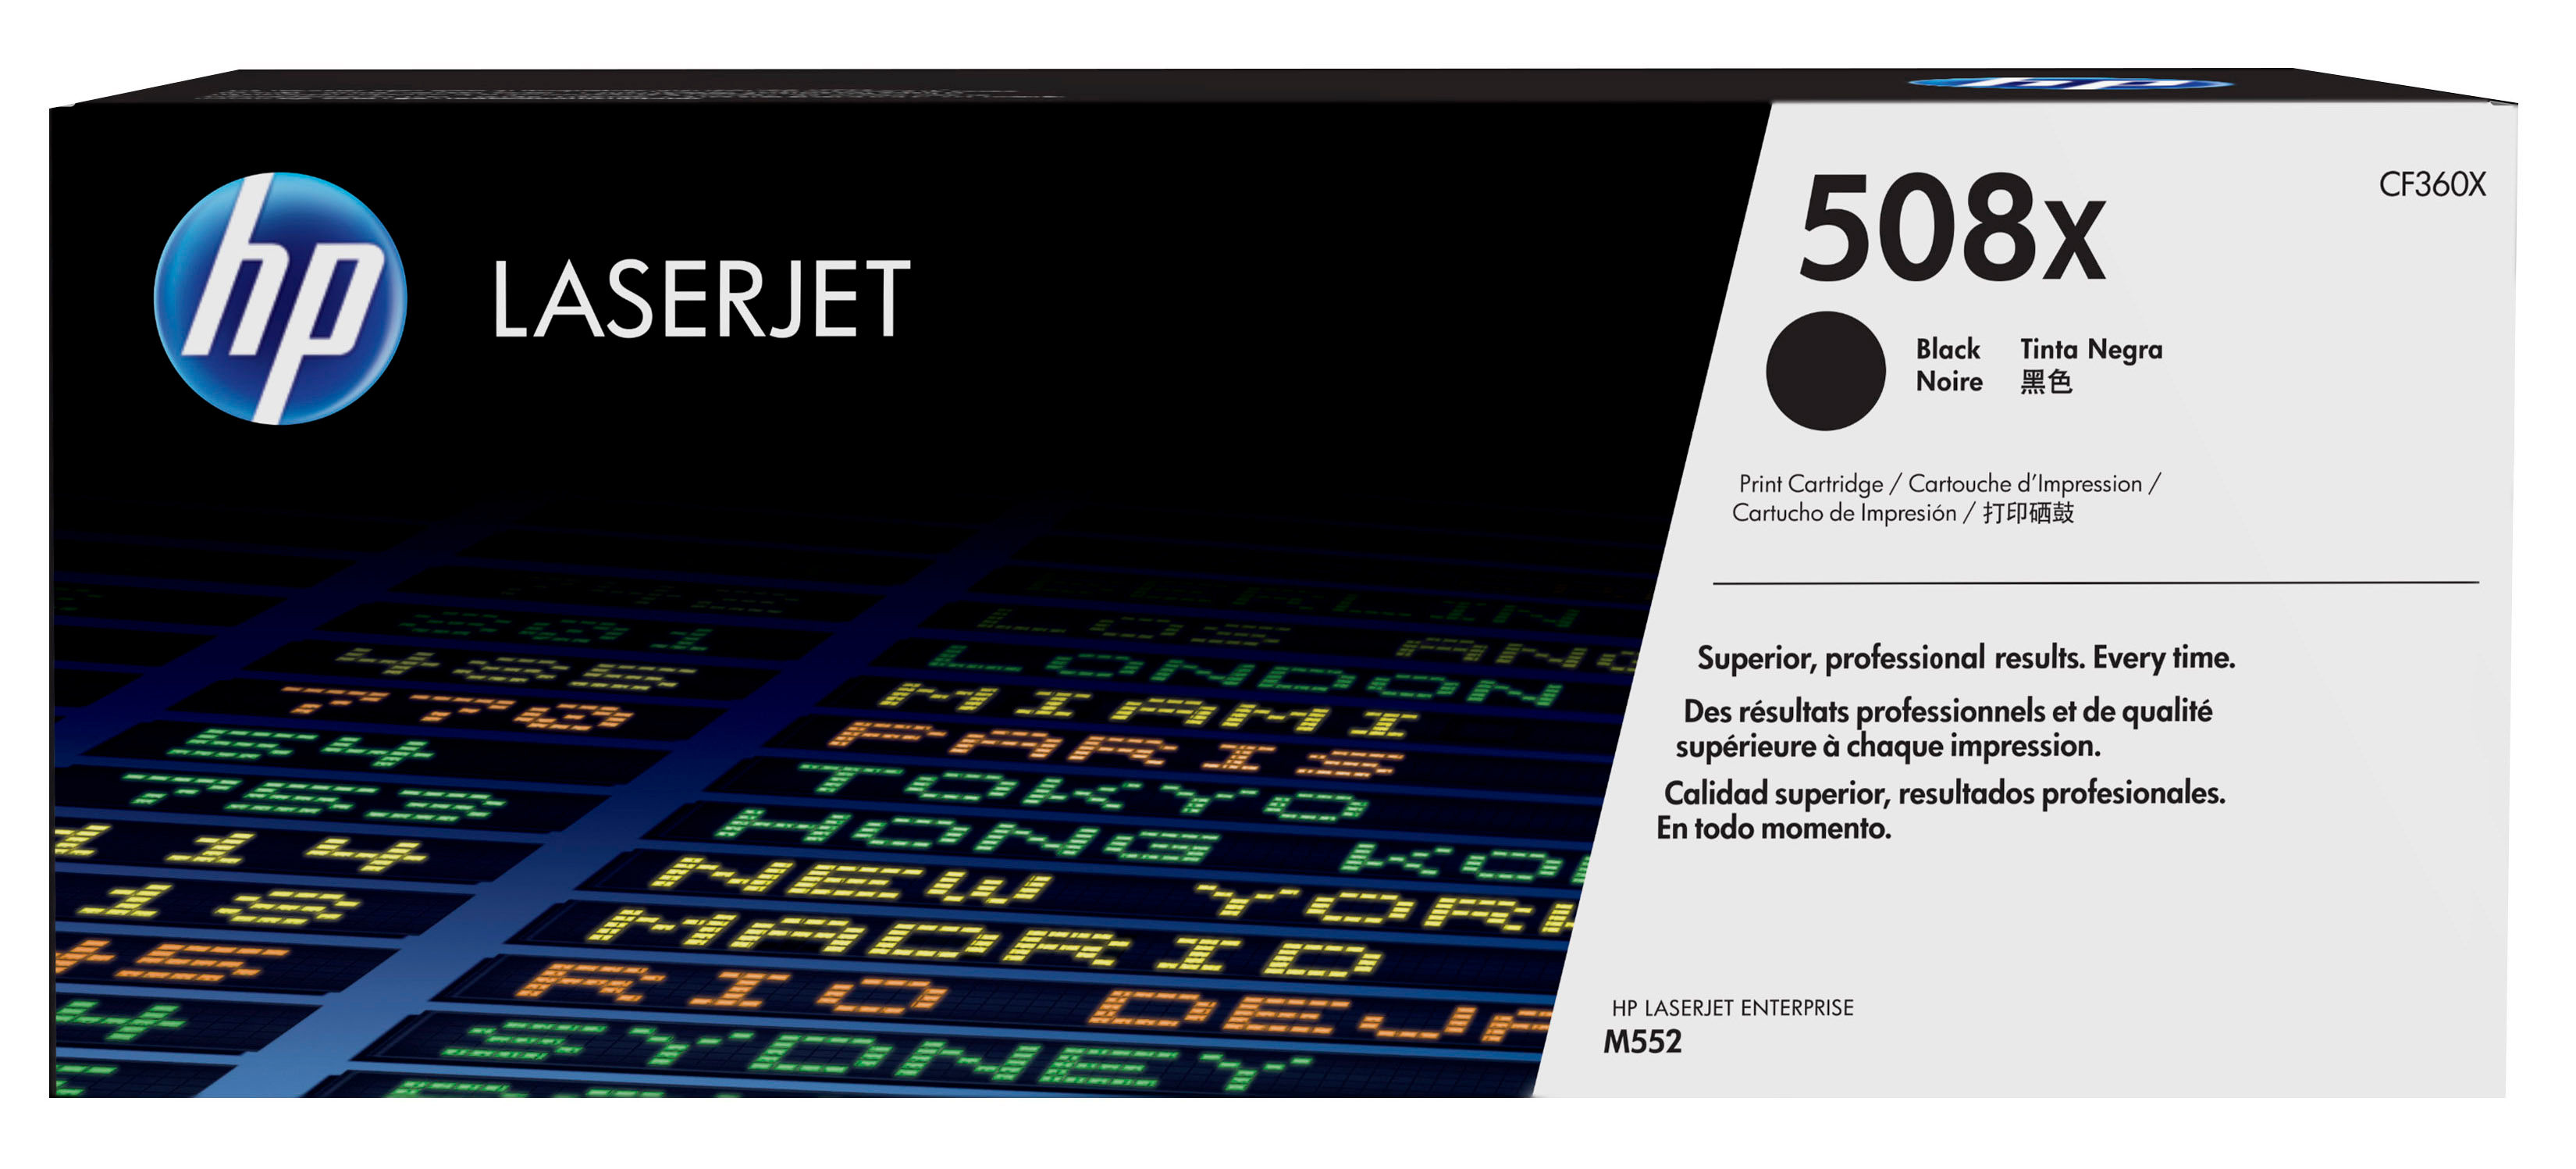 Hp - Laserjet Supply (5t)        Toner Cartridge 508x Black          .                                   Cf360x